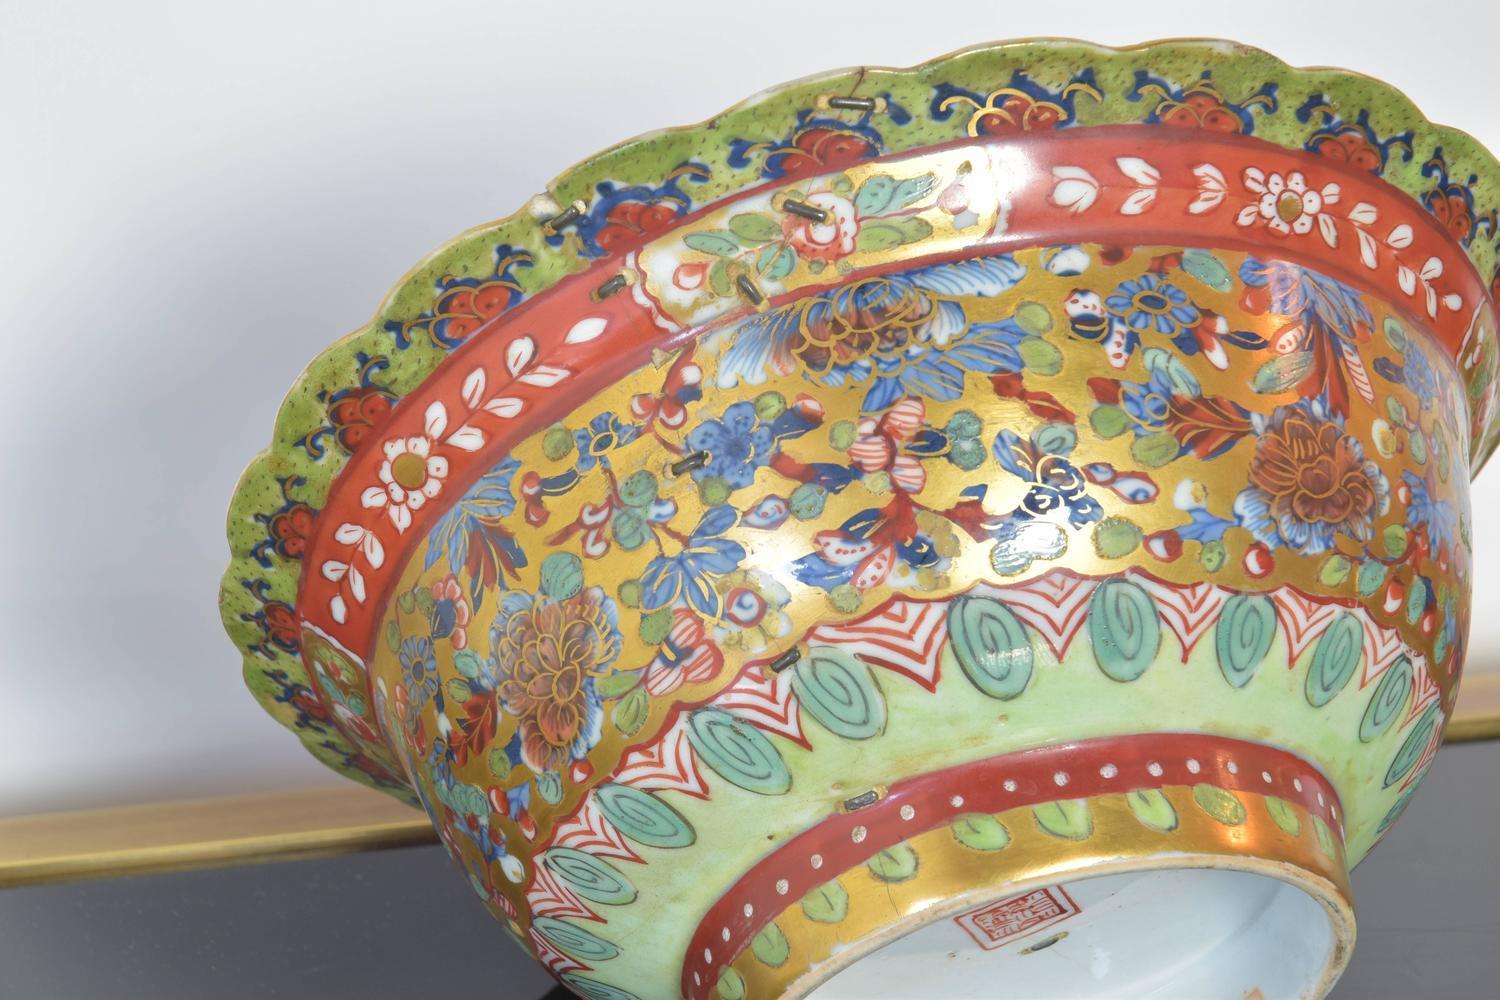 Antique Chinese Bowl With Staple Repair For Sale At 1stdibs